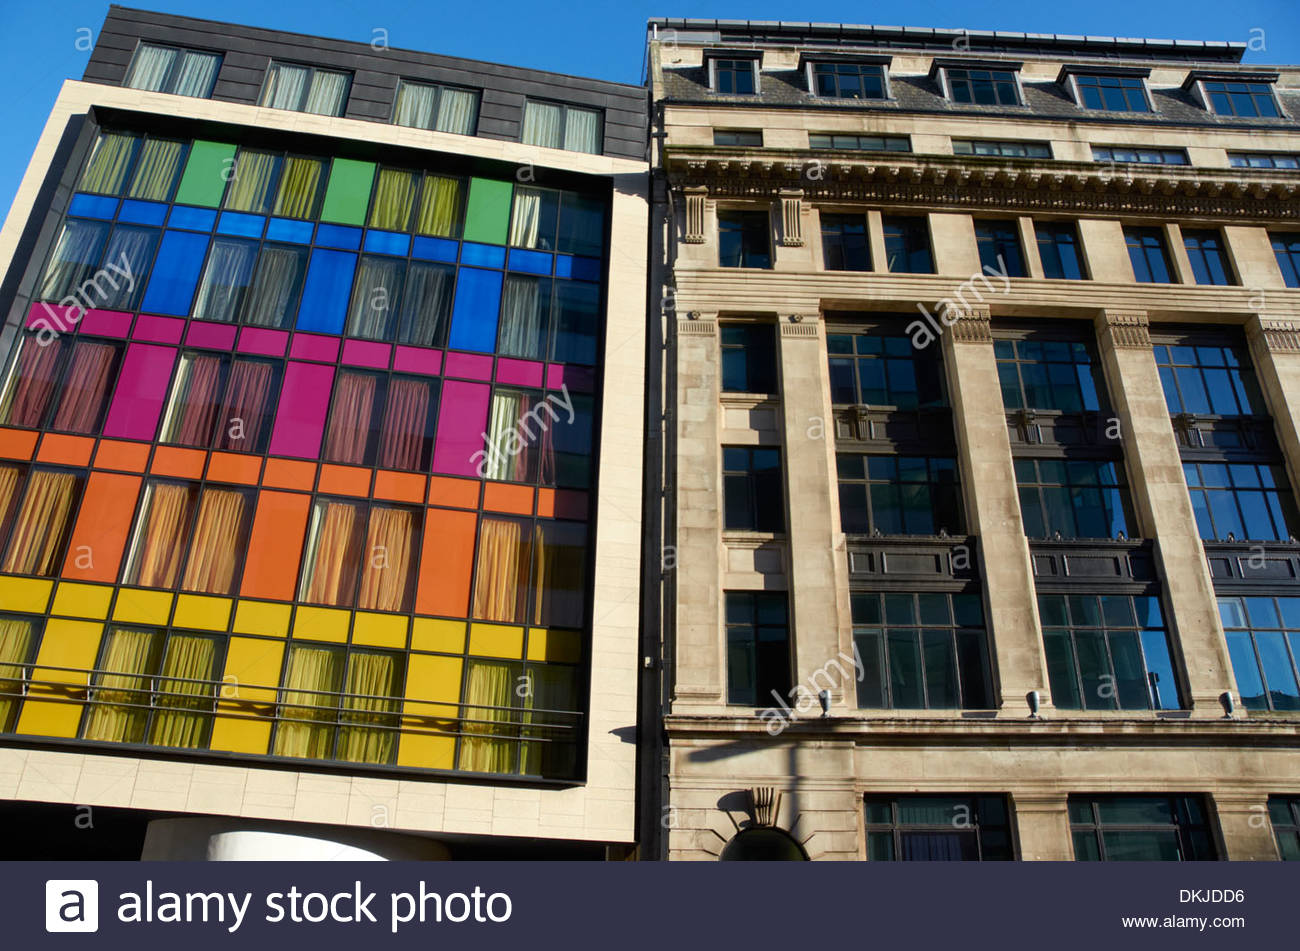 The rear facade of The Indigo Hotel on Rumford Place in Liverpool, England. - Stock Image